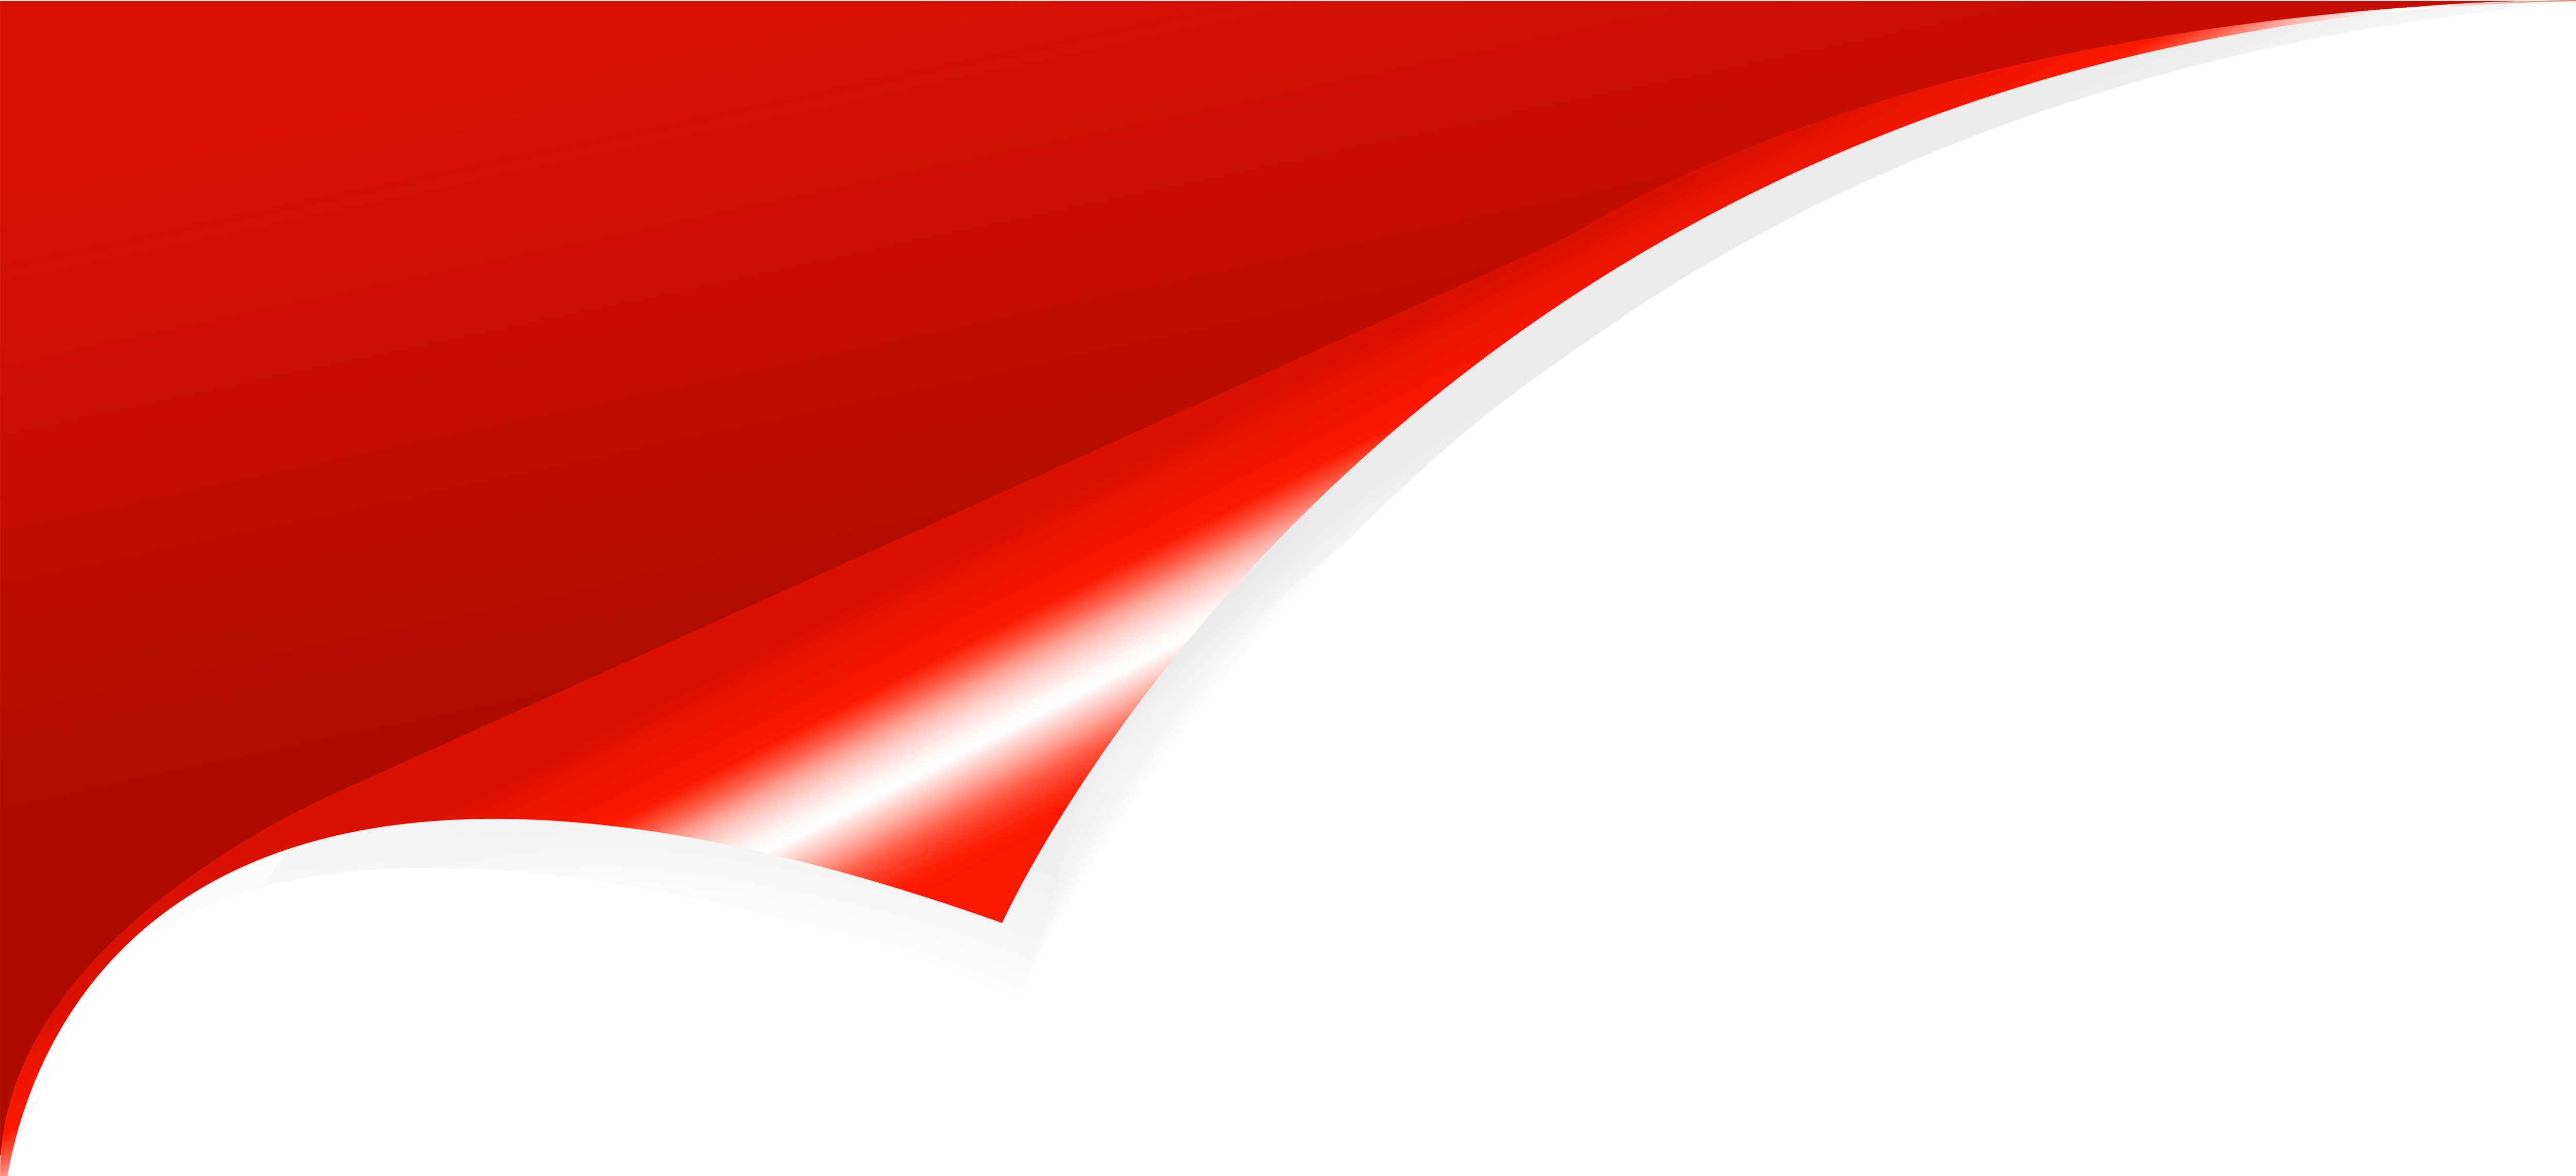 Red decoration png gallery. Clipart bow corner